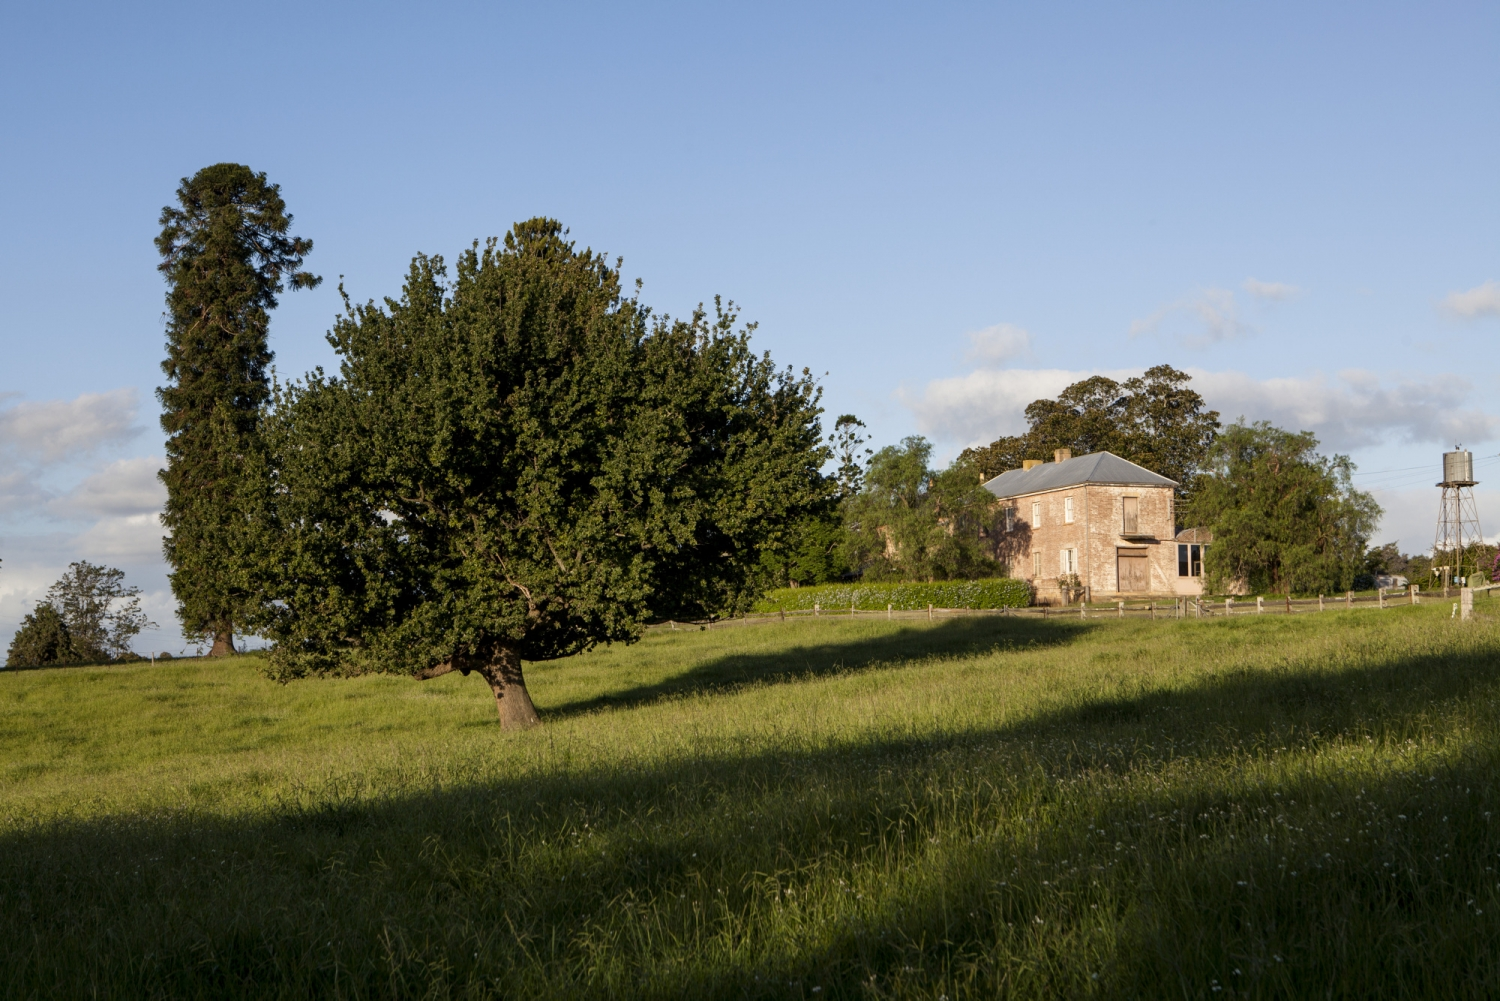 Bunya Pine and Oak trees amongst a green paddock at Rouse Hill House and Fram